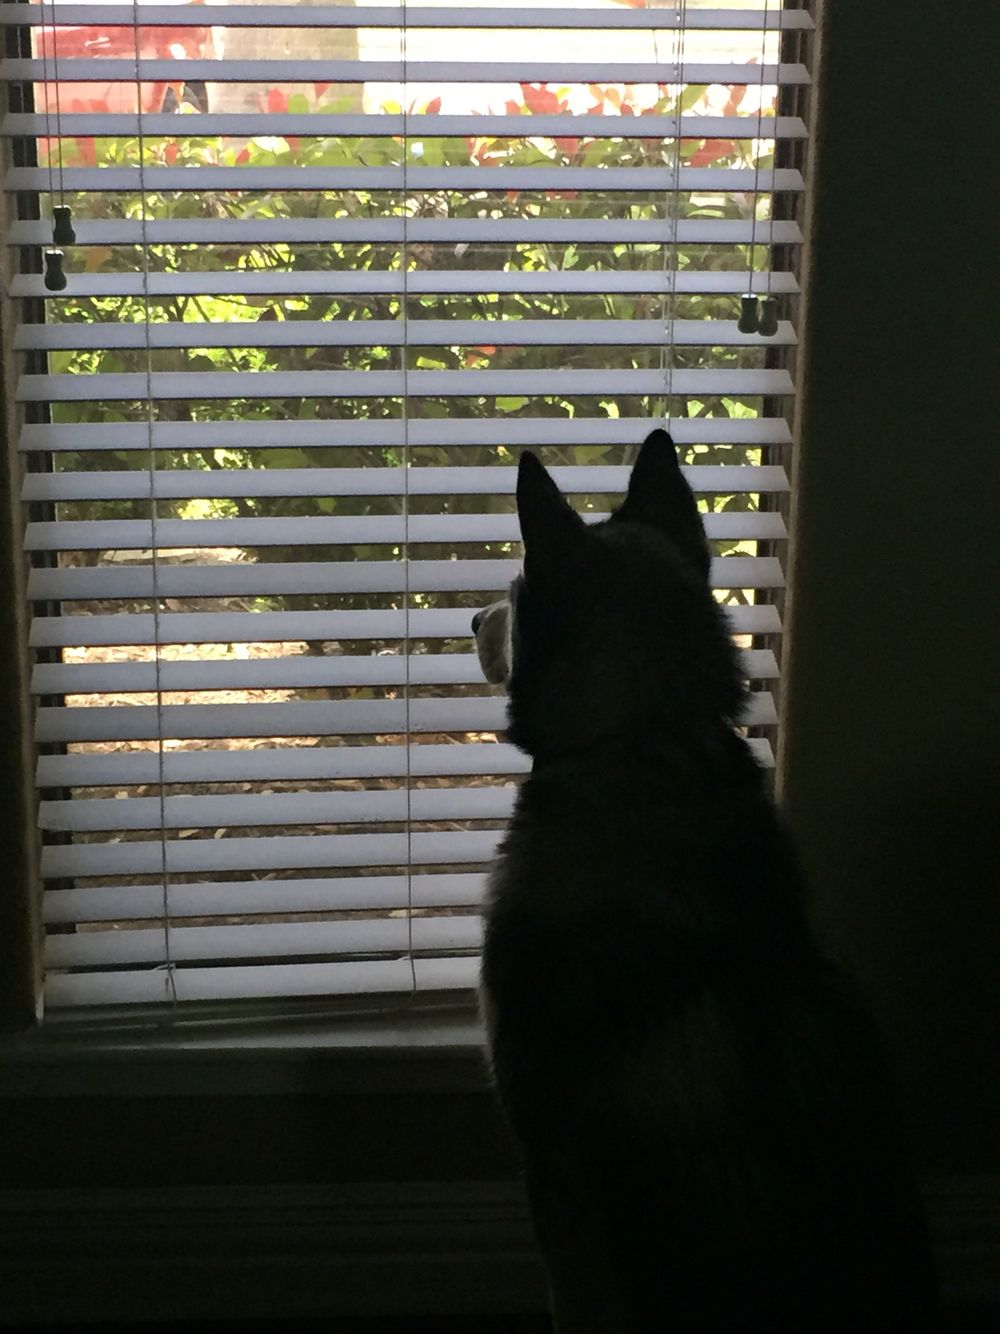 Window watching is his favorite thing to do to pass time